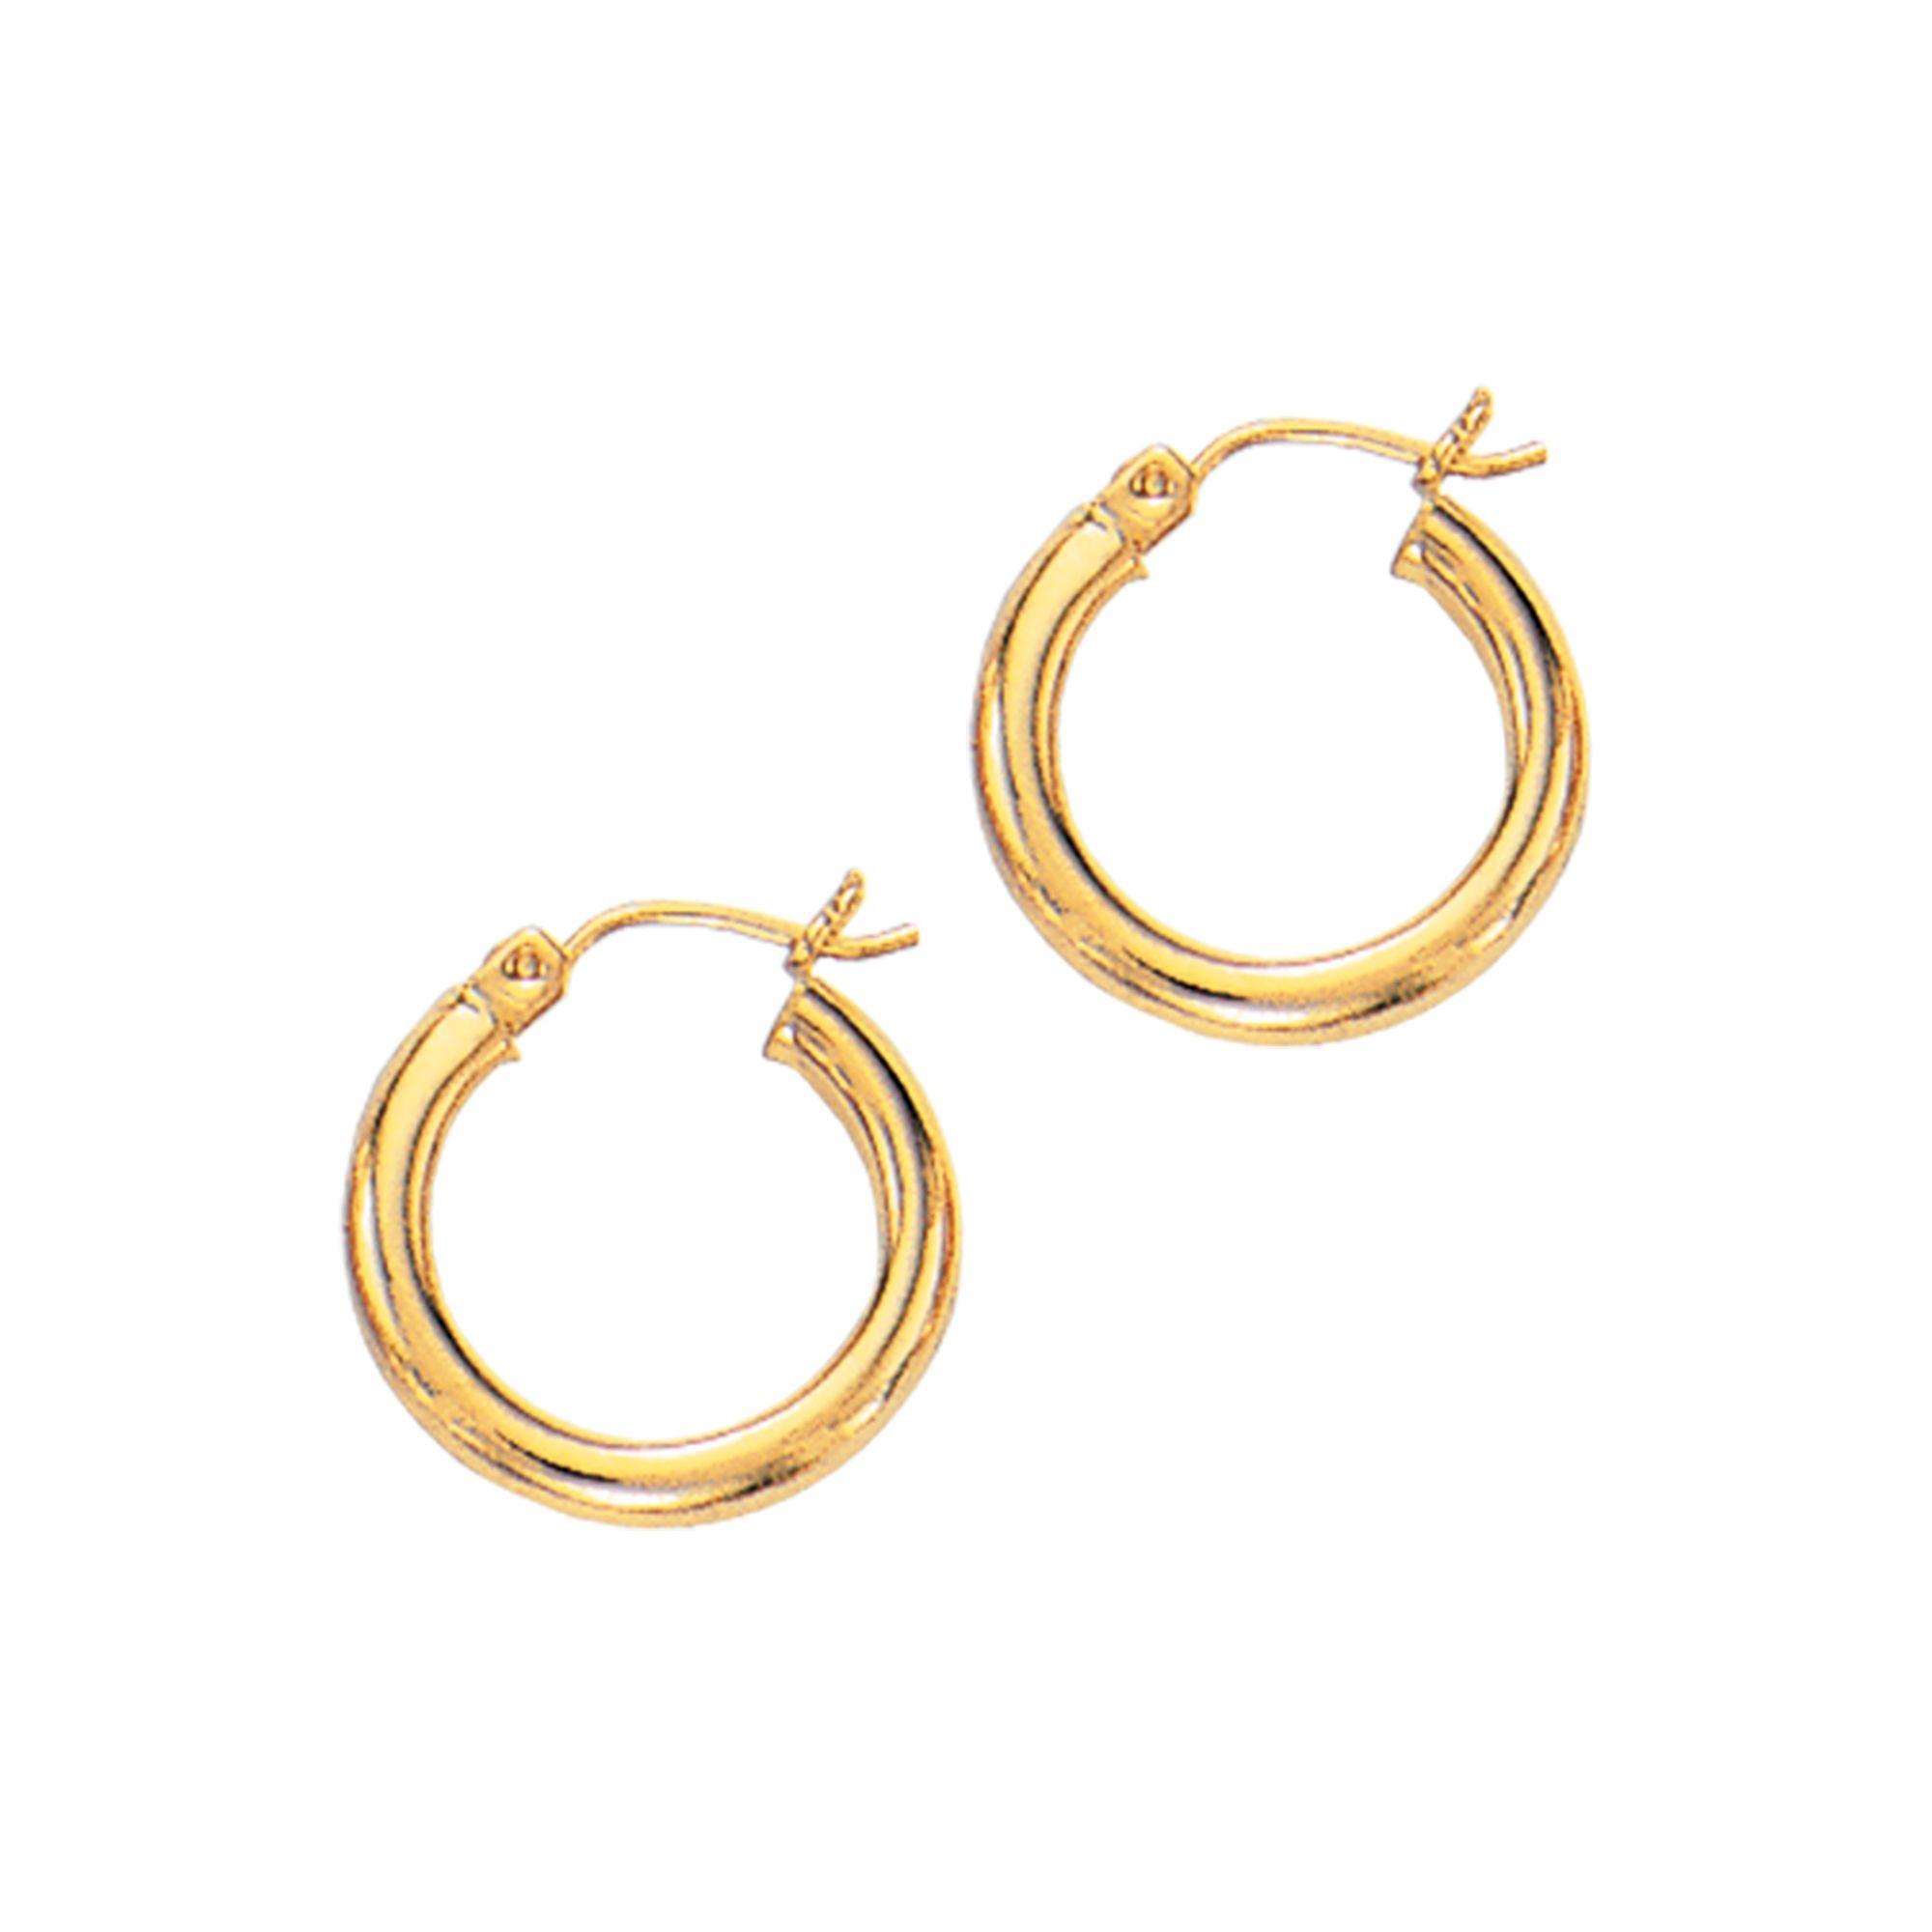 14 Karat Gold 3 mm Polished Hoop Earrings